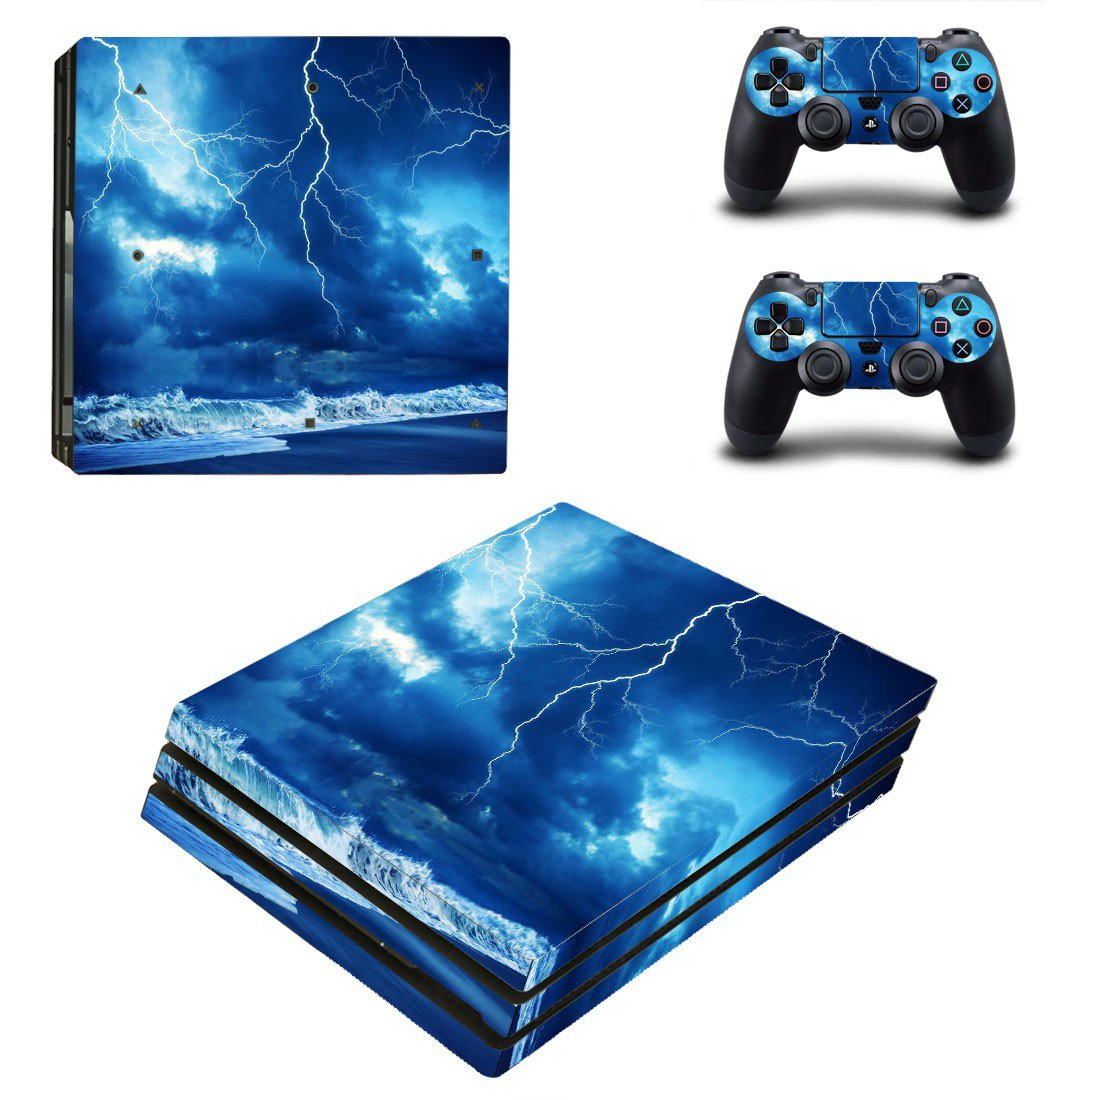 Thunder lightings decal skin for PS4 Pro Console & Controllers